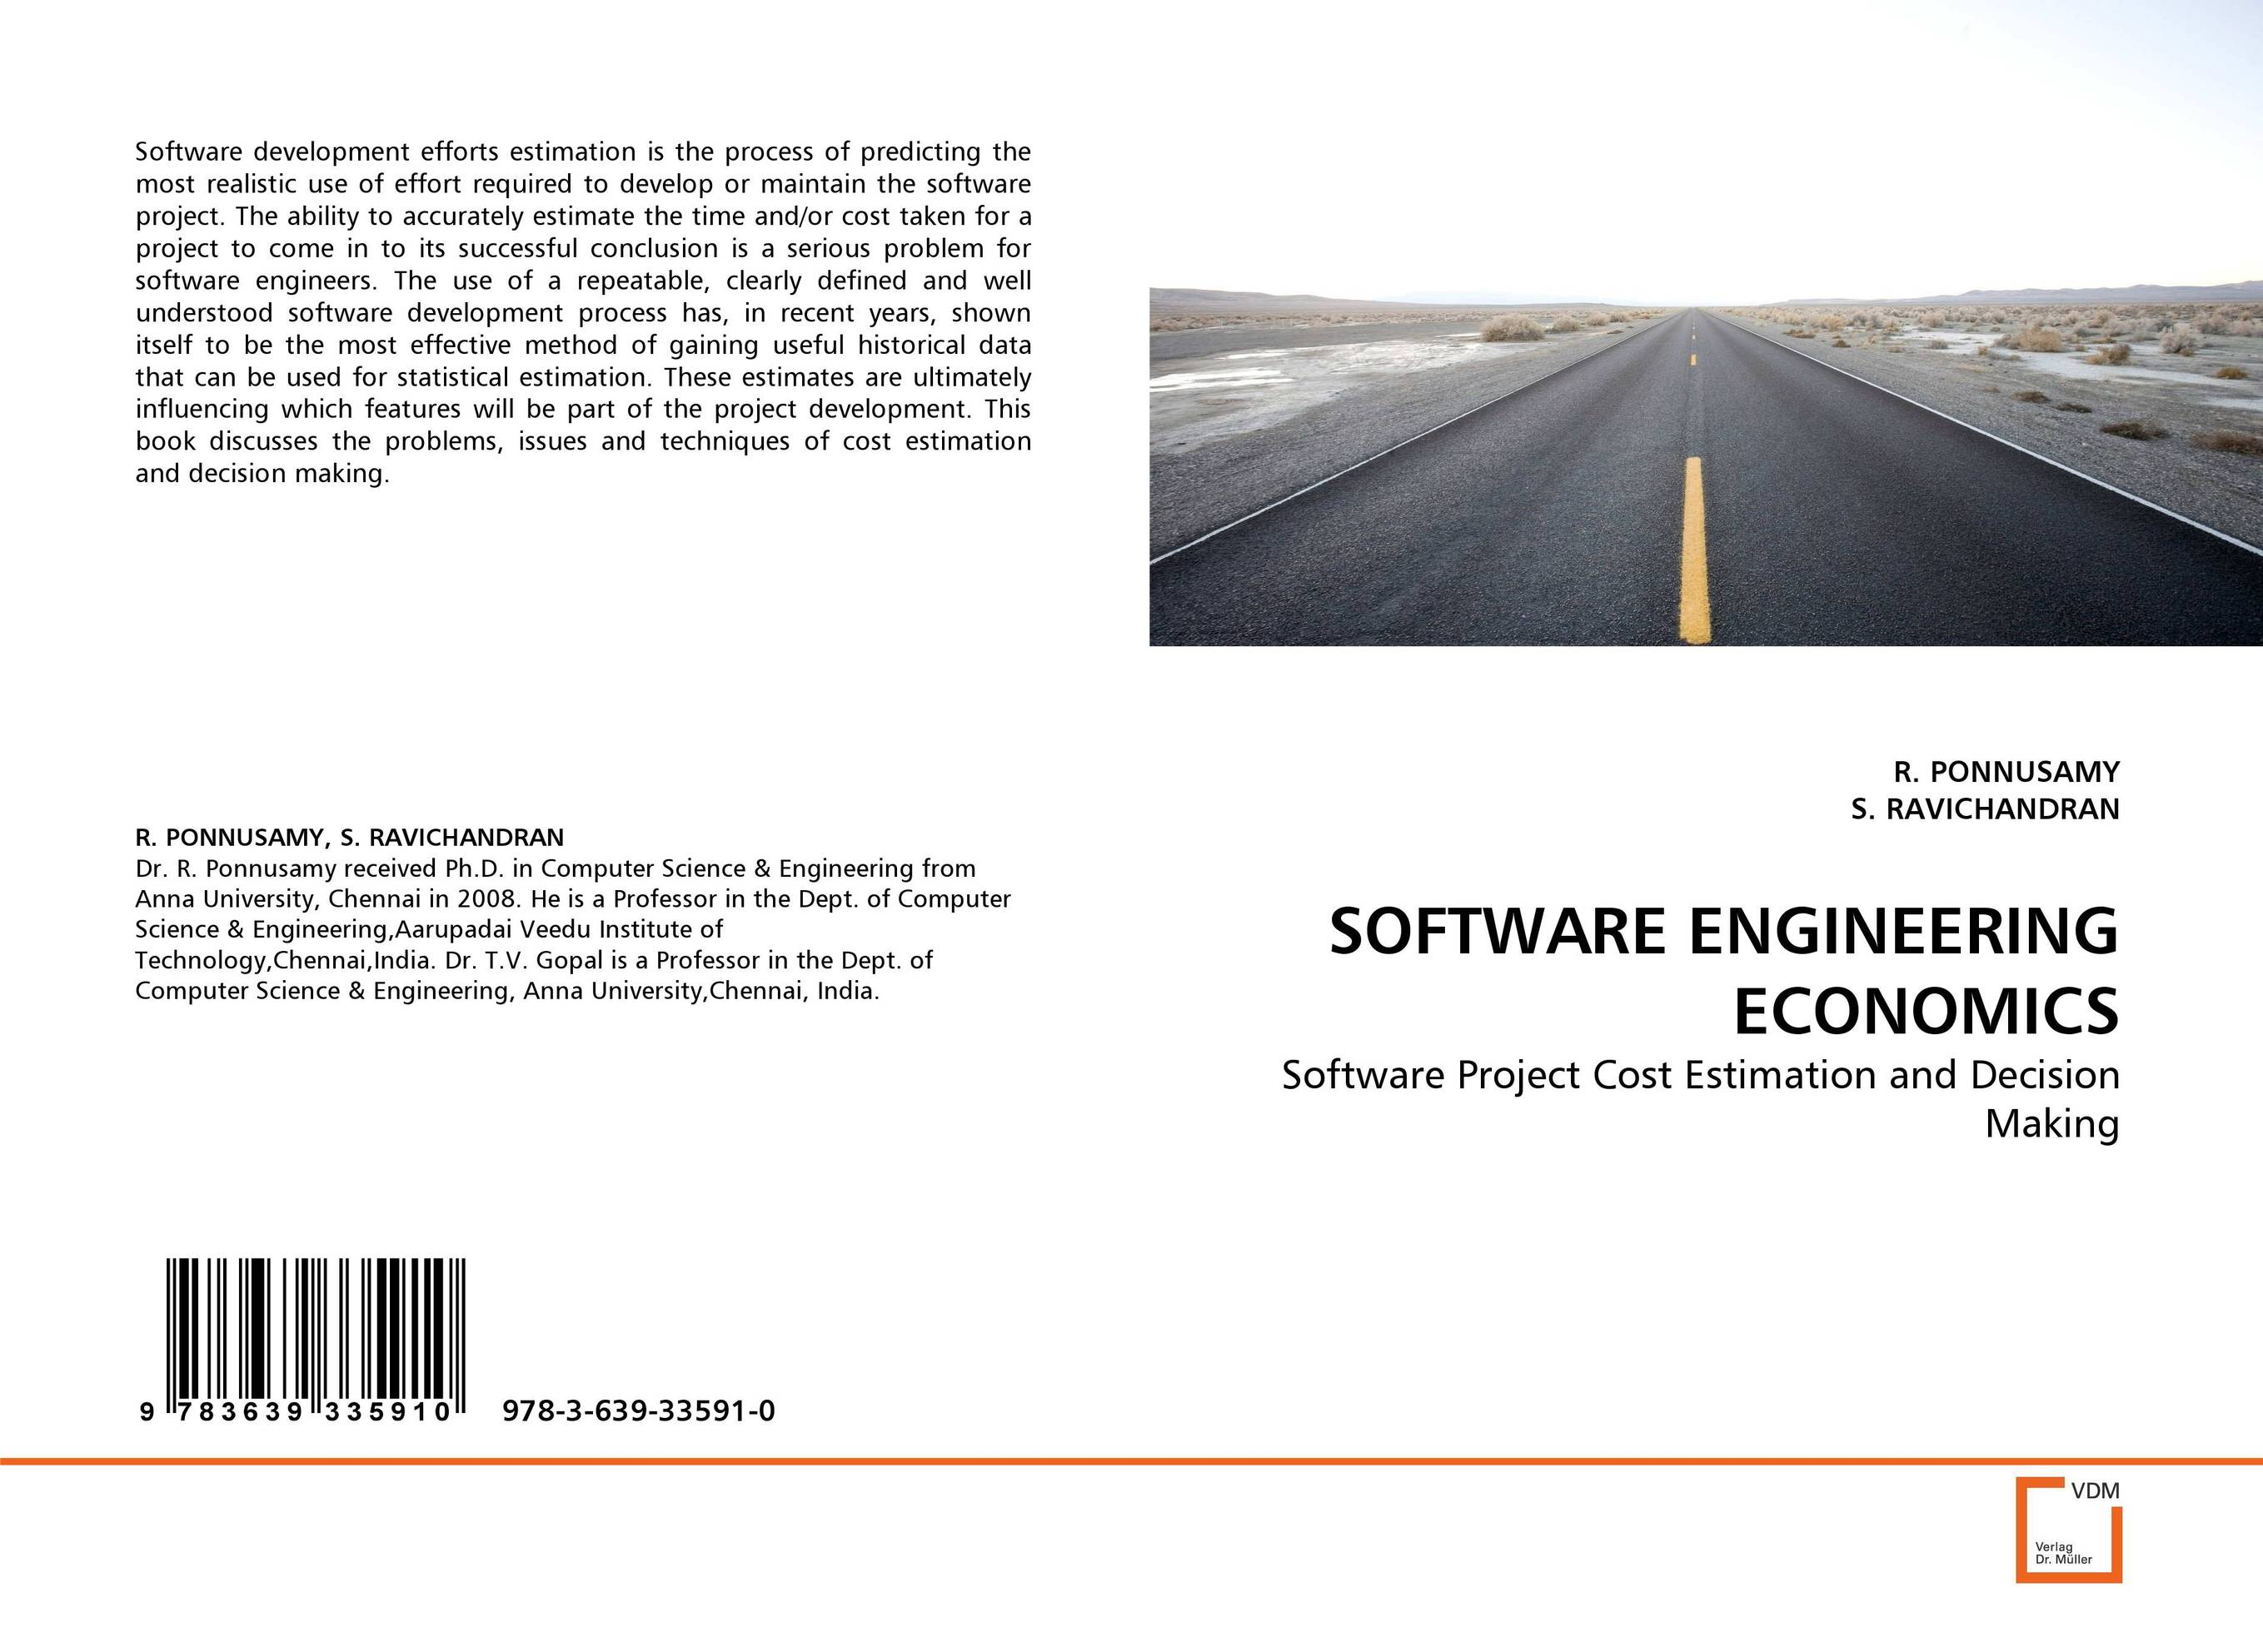 SOFTWARE ENGINEERING ECONOMICS a novel software cost estimation techniques using fuzzy methods